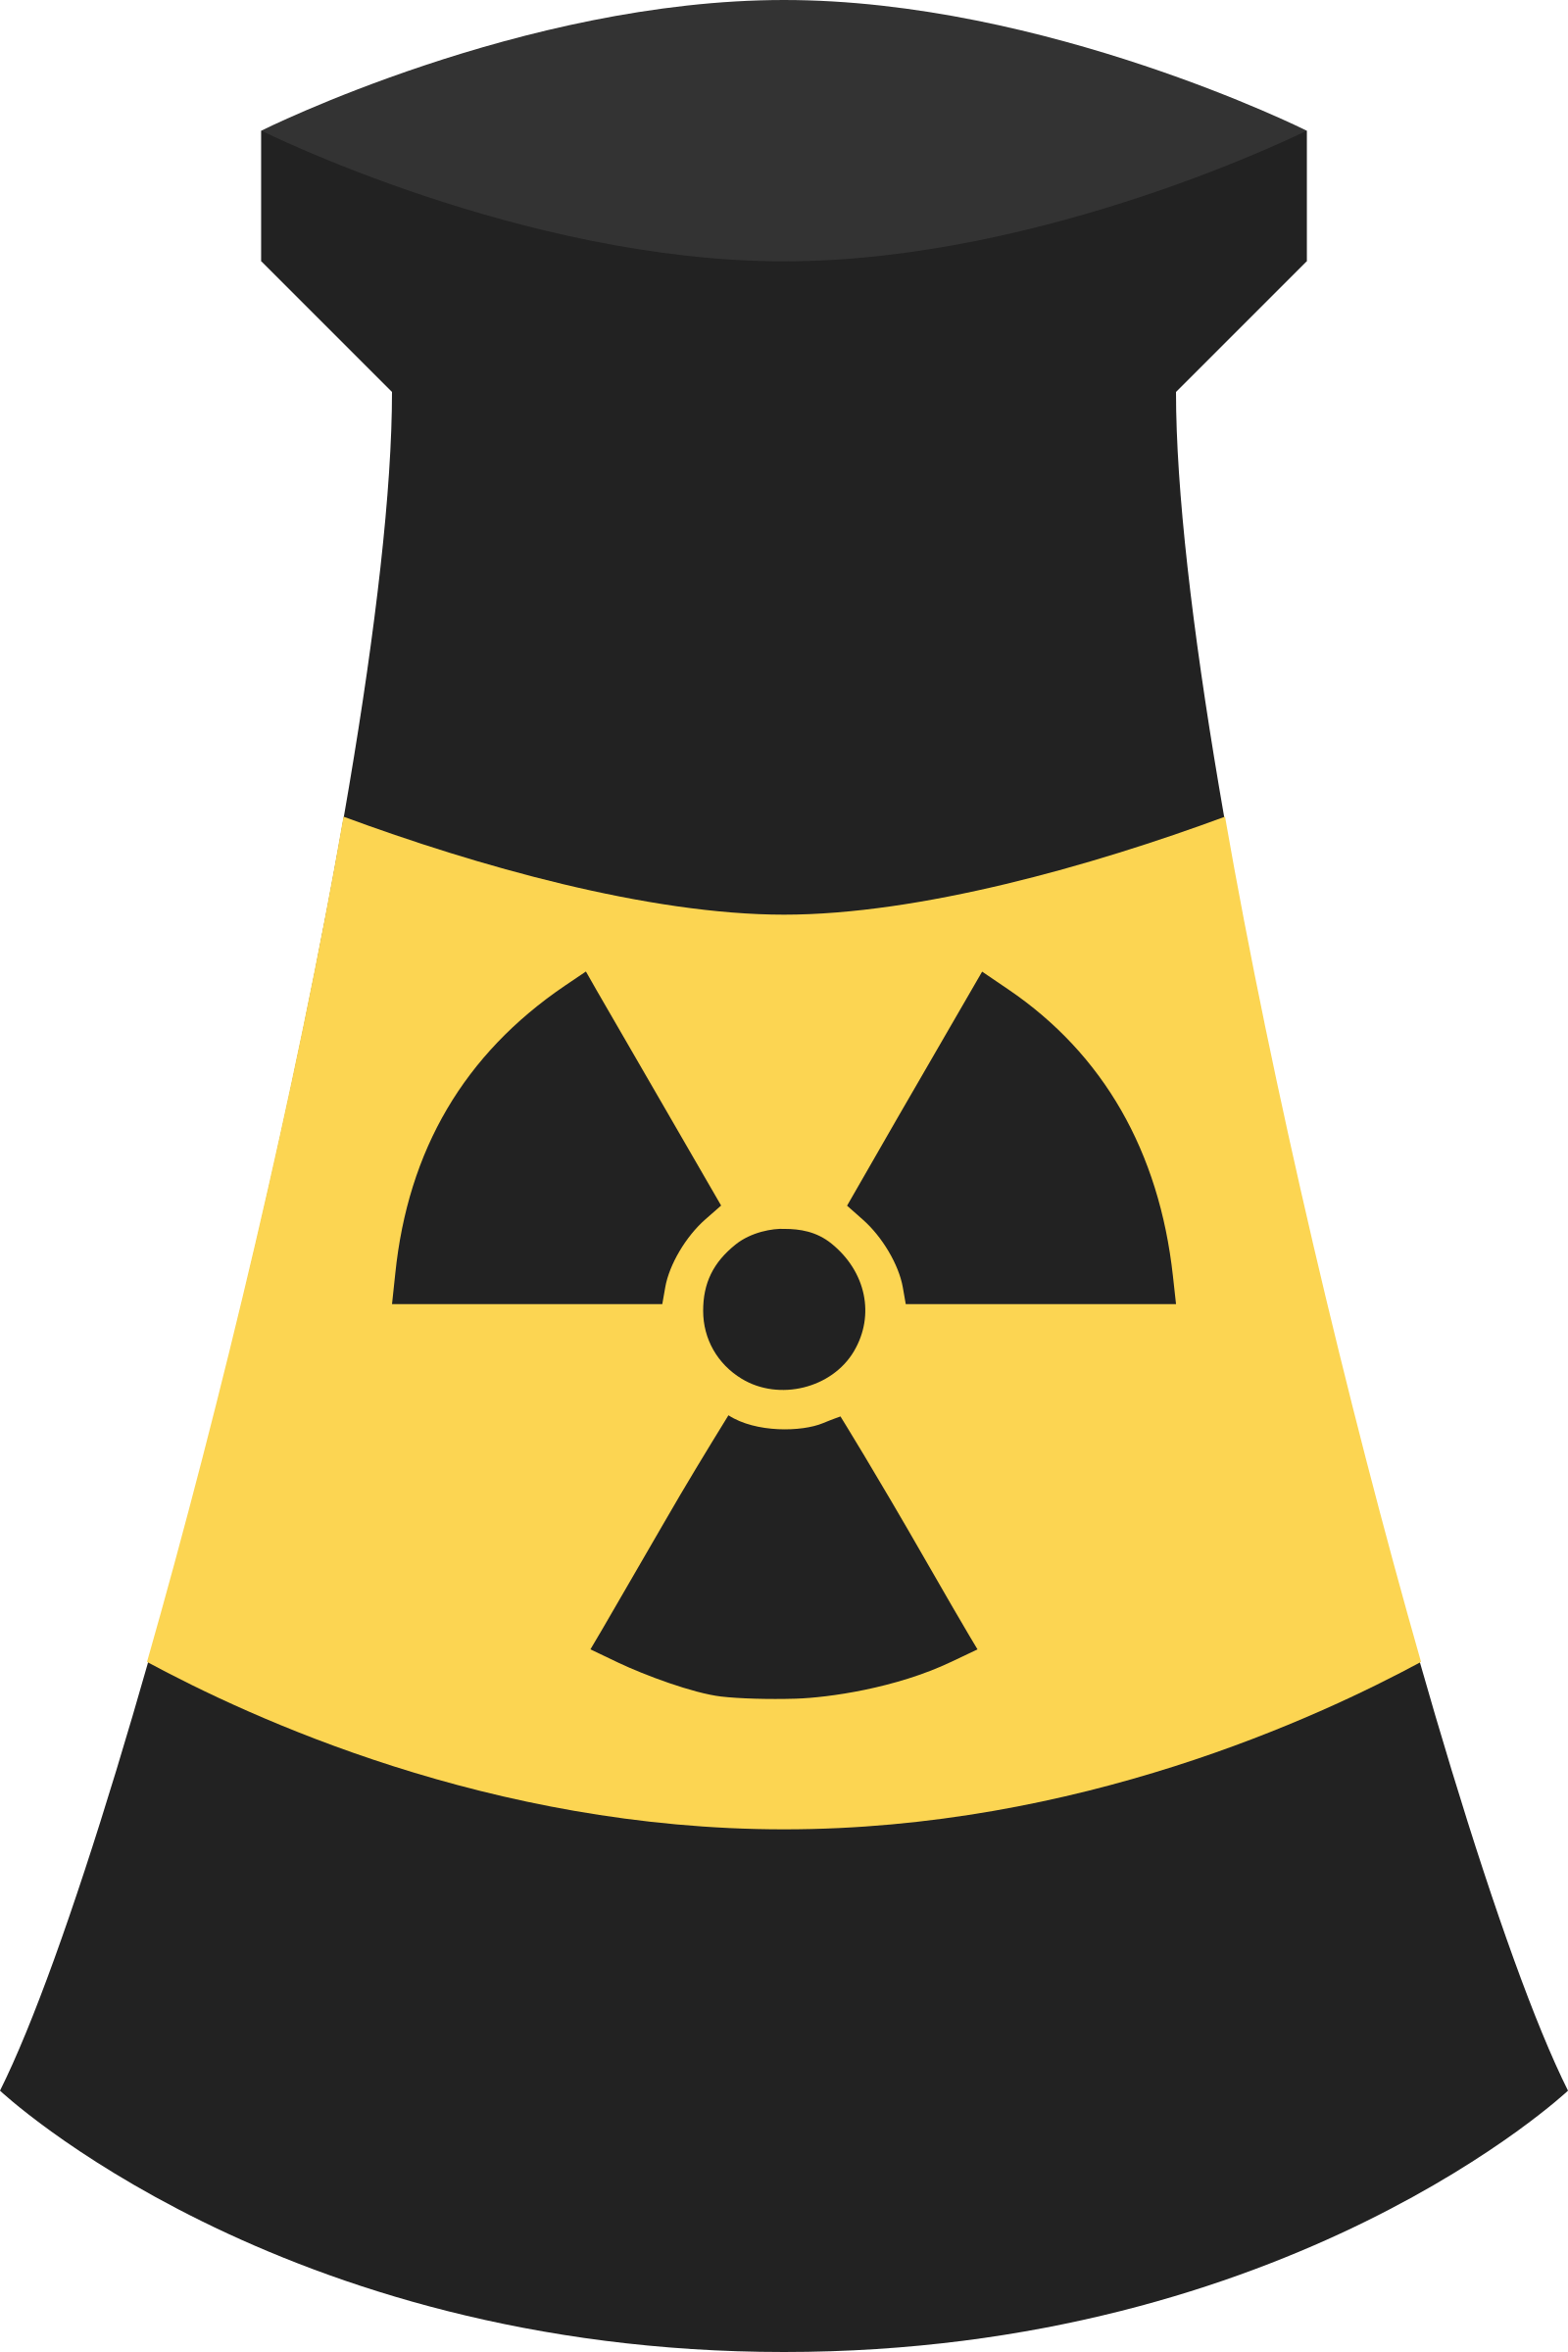 Atomic Energy Plant Symbol 4 by qubodup